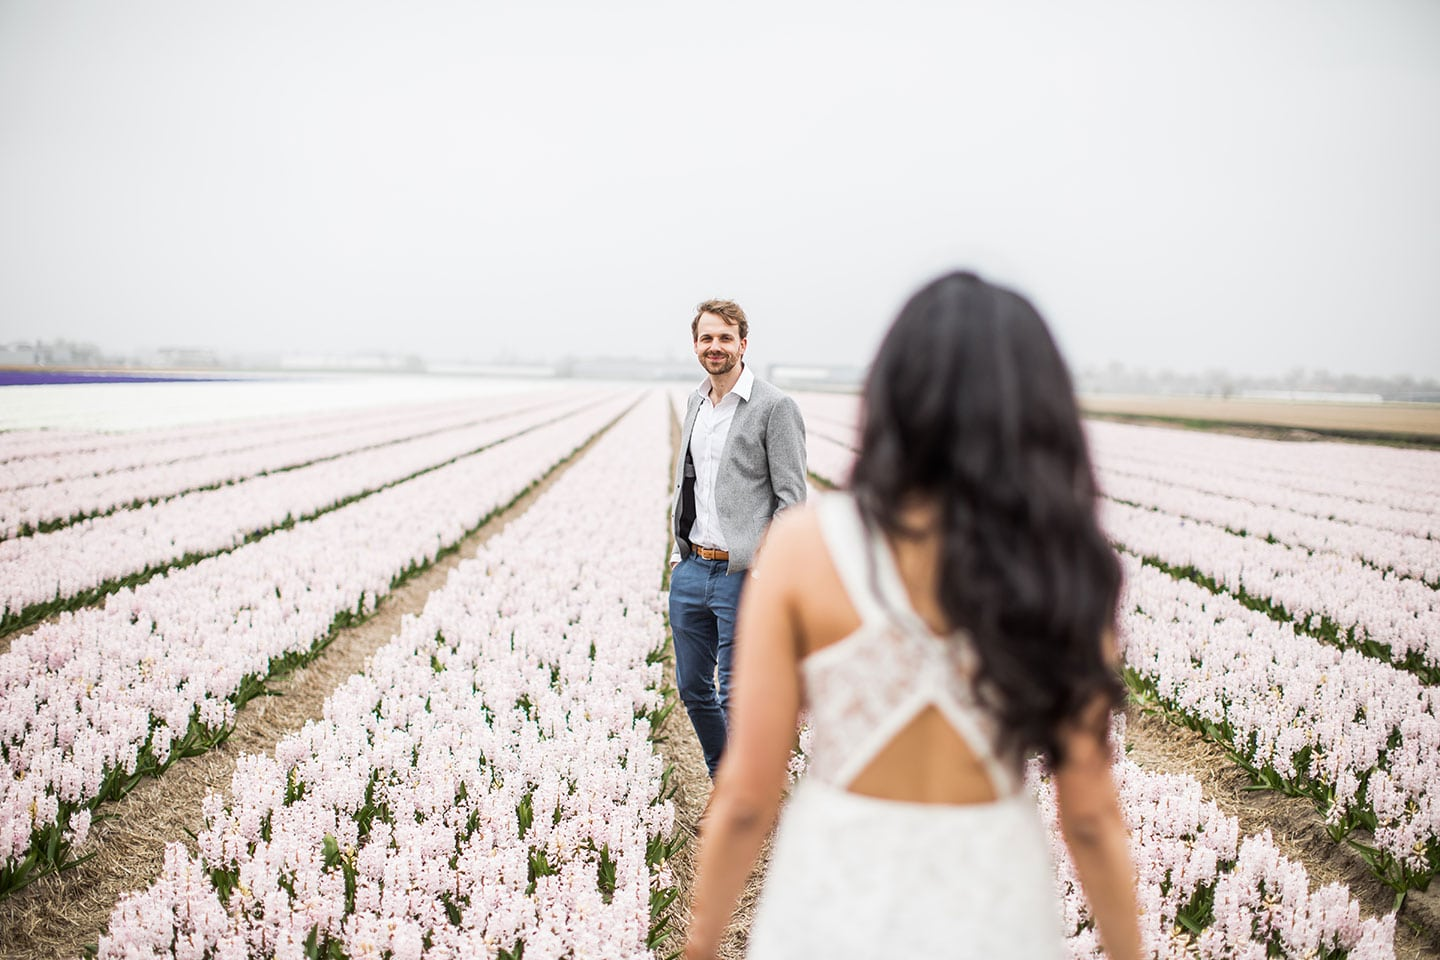 Keukenhof flower gardens Netherlands engagement photoshoot